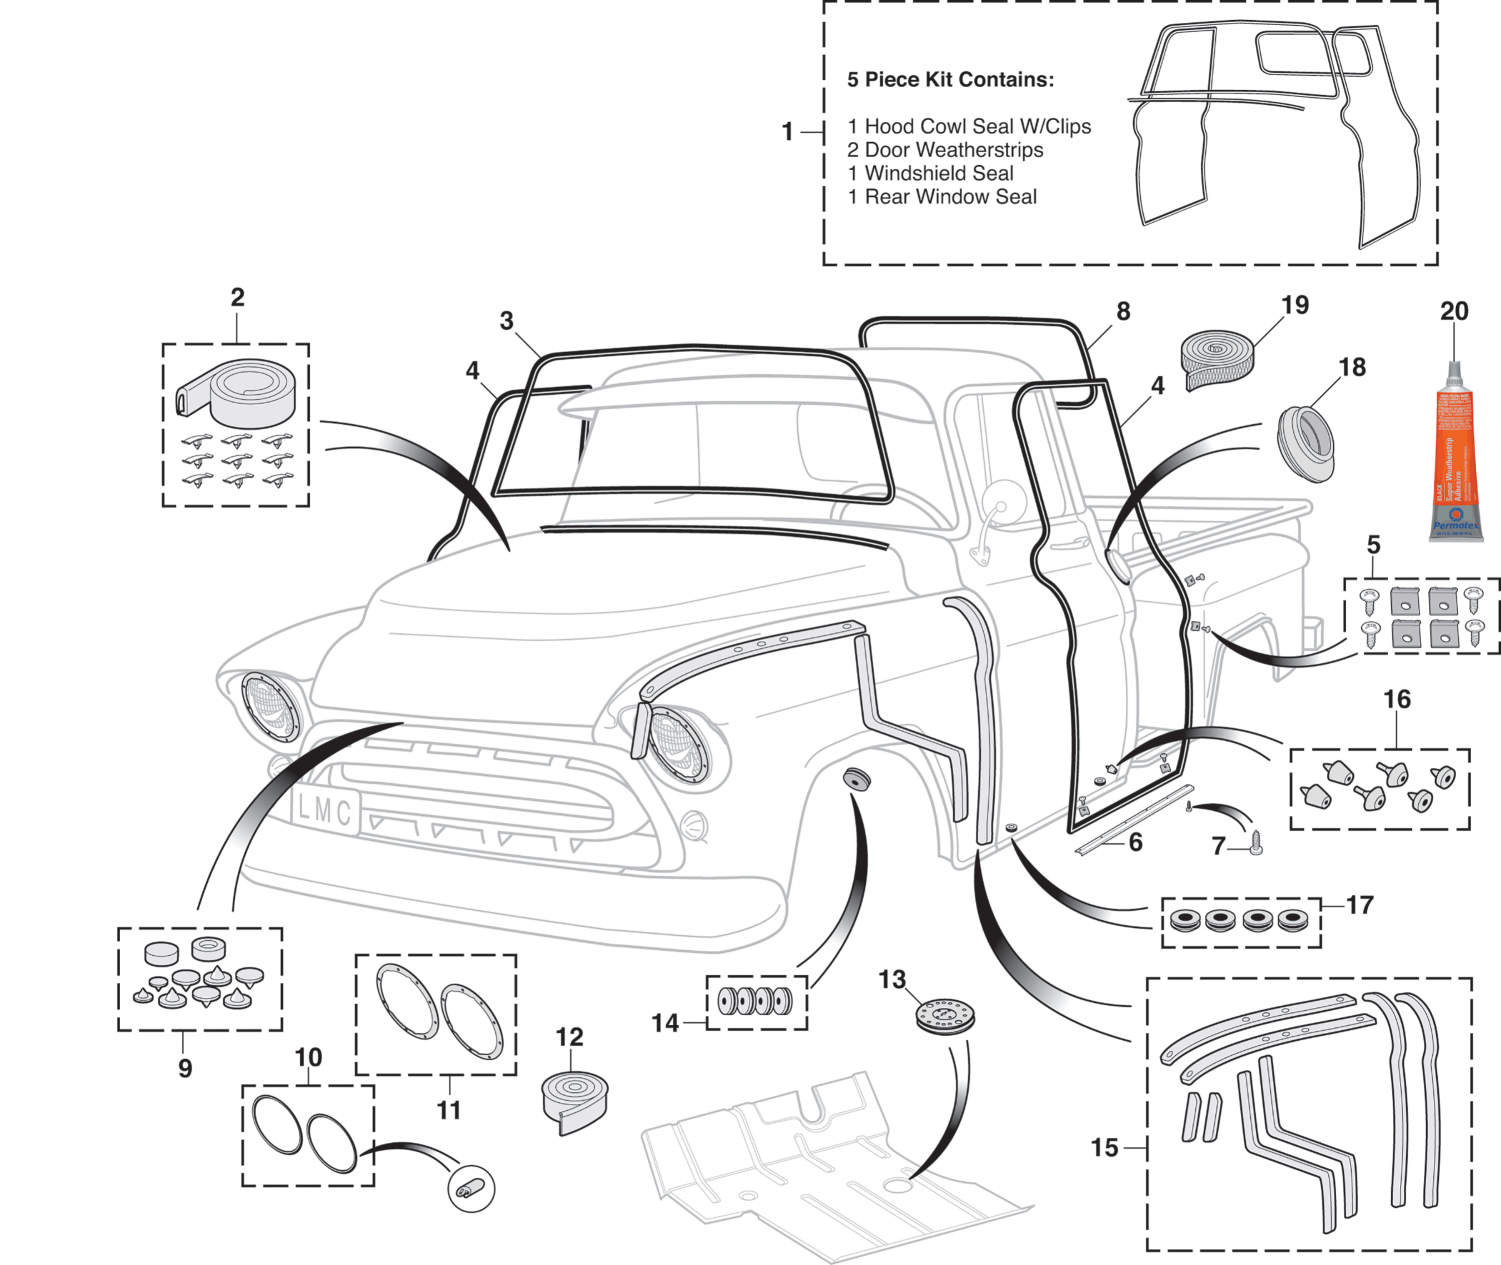 Exterior Rubber Kit and Components